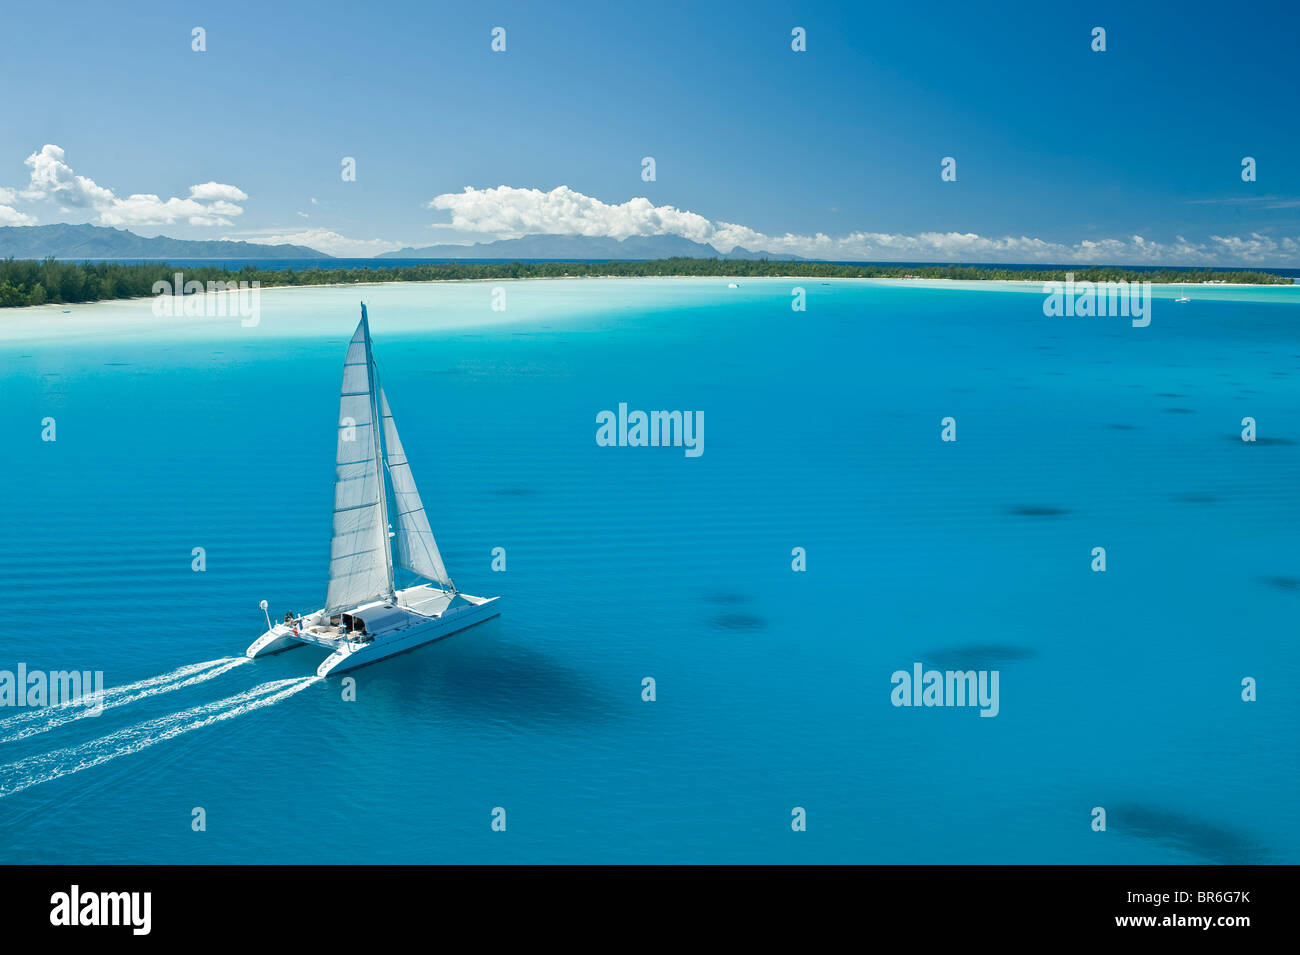 Catamaran sailing boat in the clear blue water lagoon of Bora Bora - Stock Image